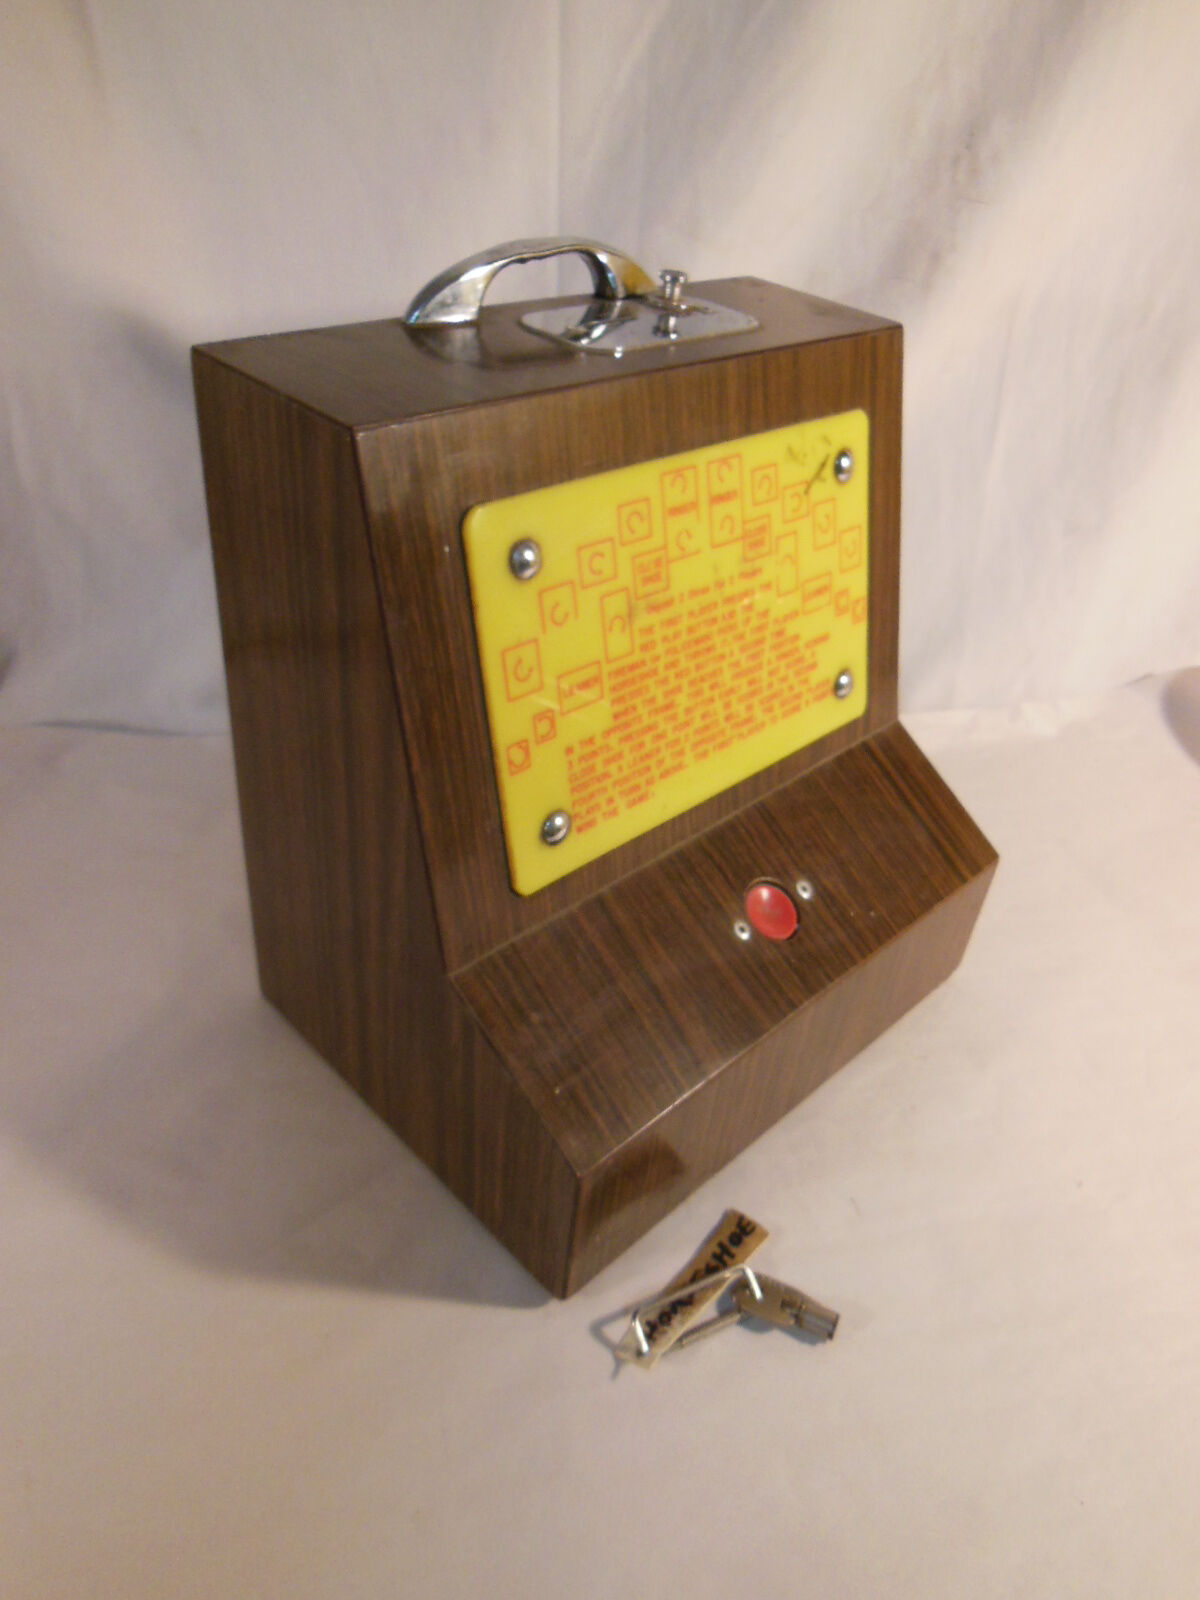 Old Coin Operated Score Keeper of Horse shoes Toss  Game with Key RARE & VINTAGE  at the lowest price